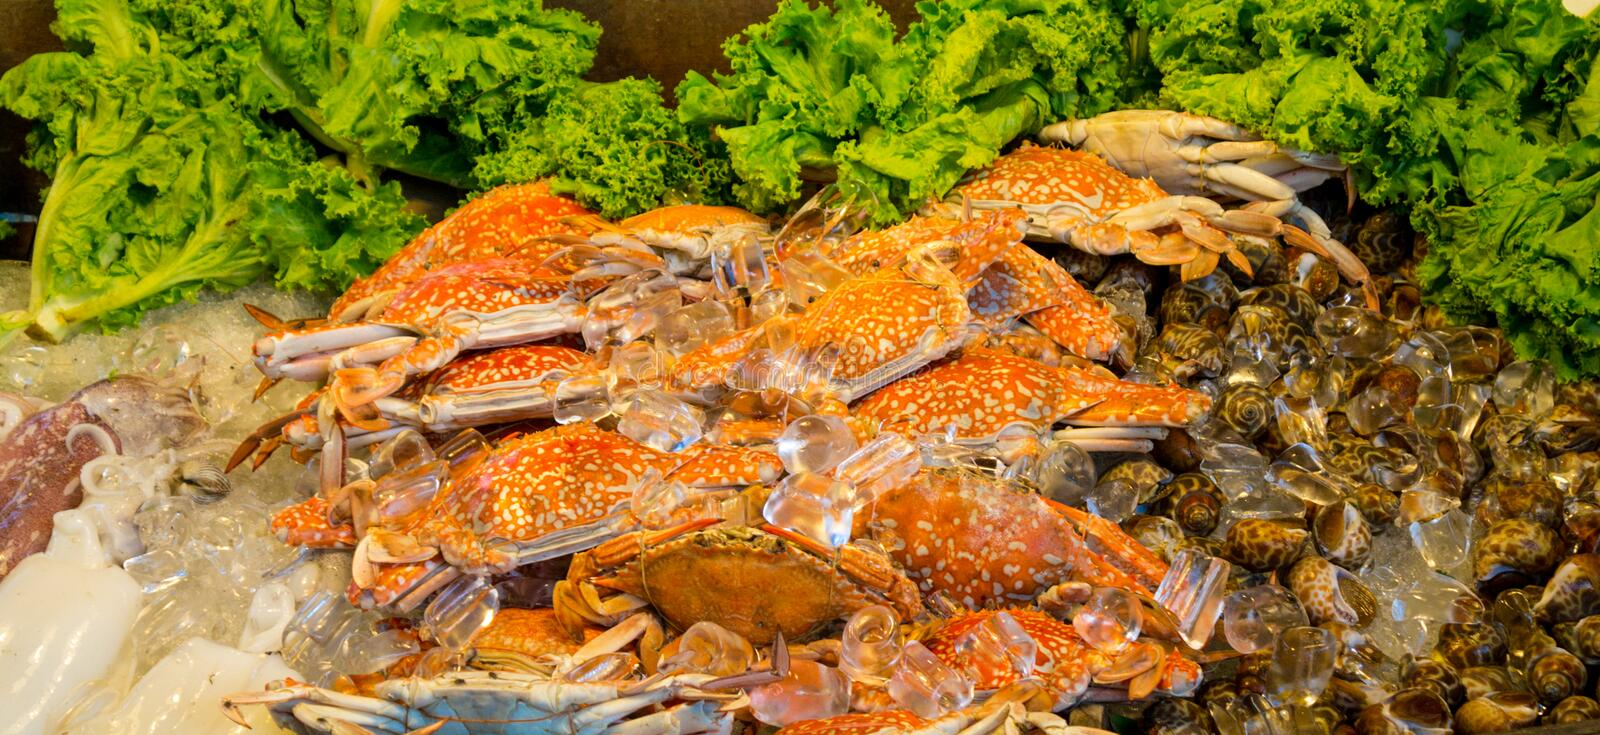 Seafood at the market big crabs in ice stock images